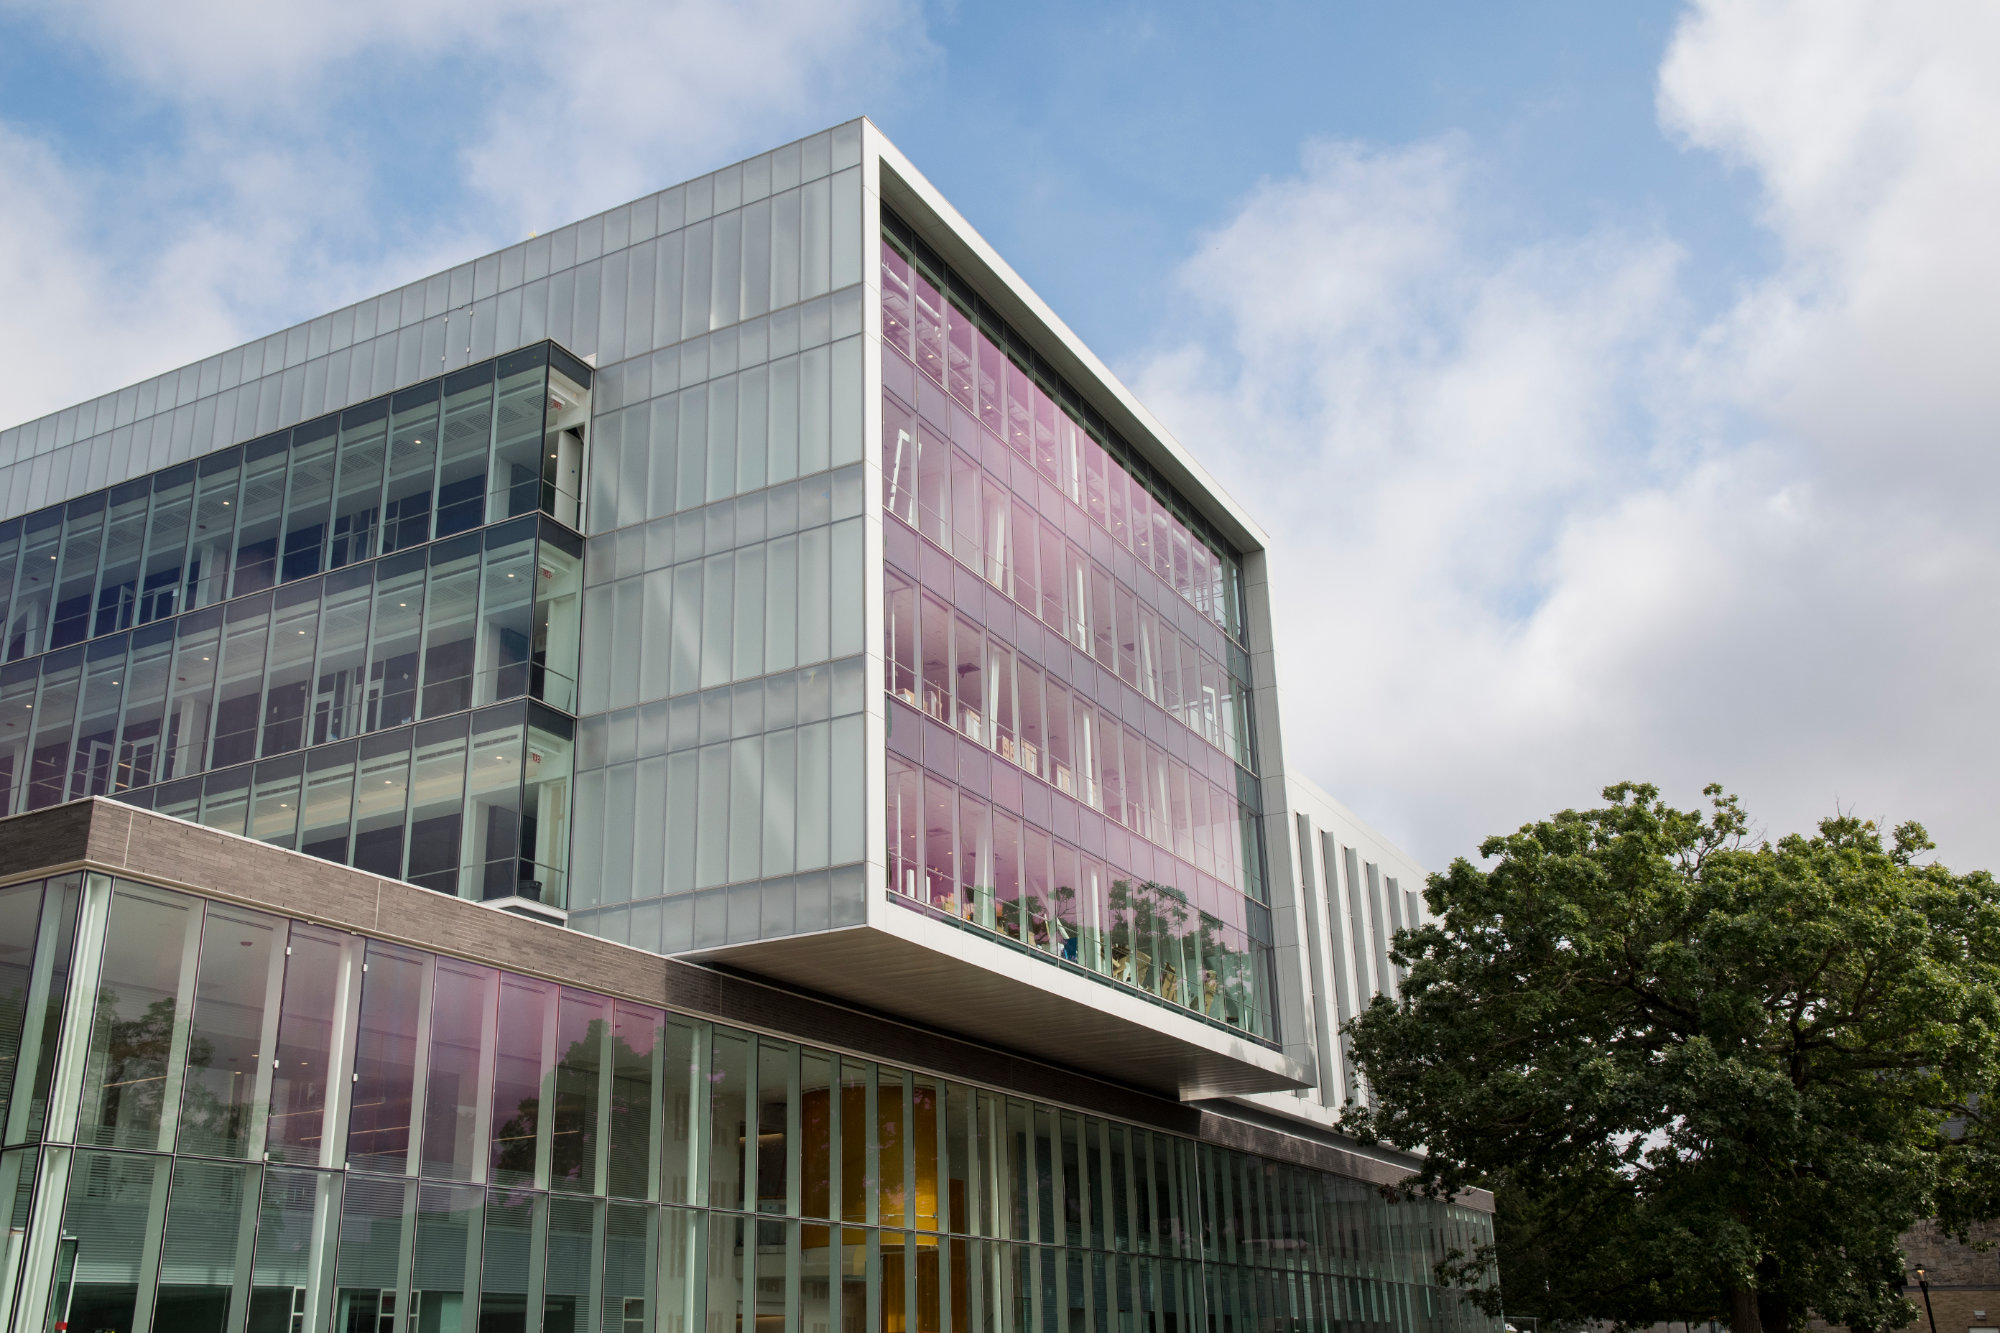 A view of the glass facade of the Fascitelli Center for Advanced Engineering